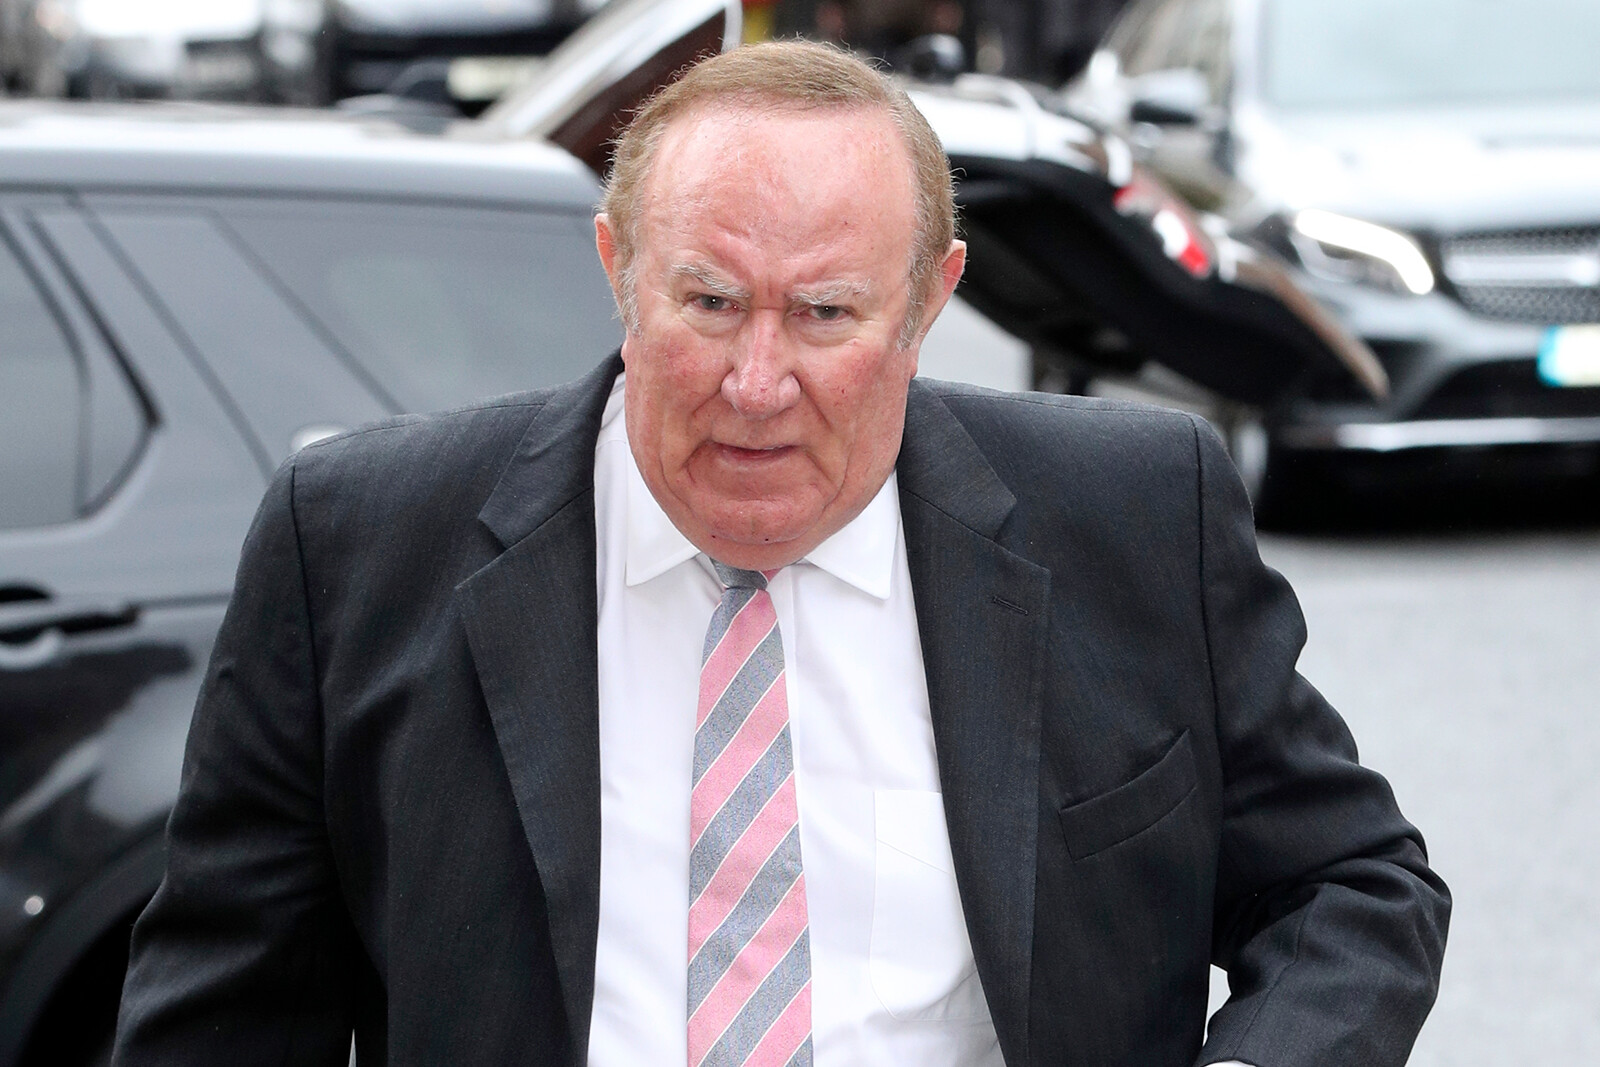 Andrew Neil resigns as chair of GB News three months after network's launch